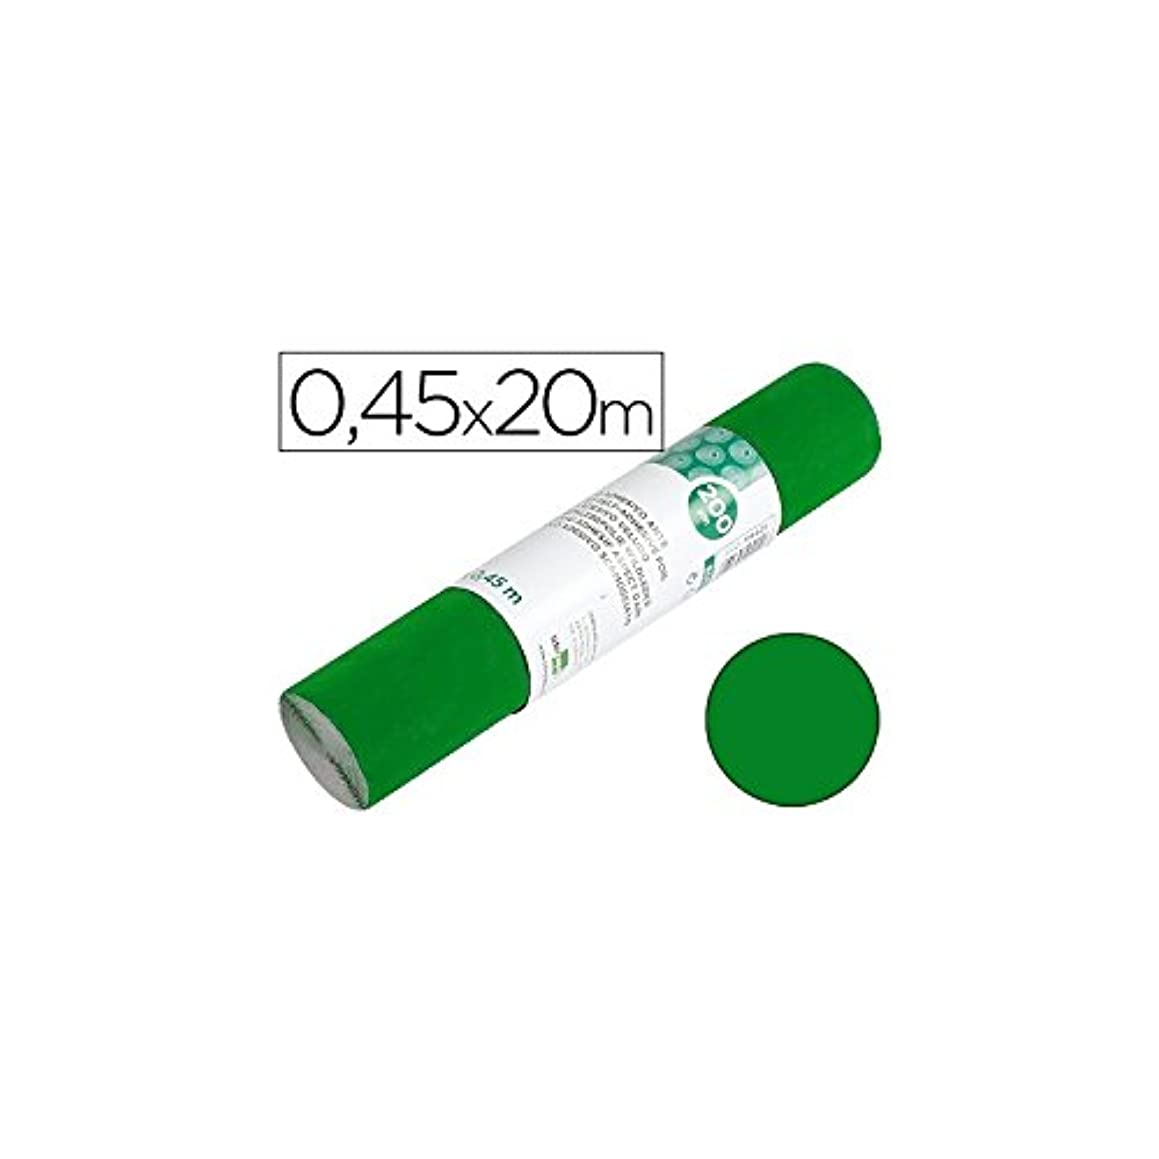 Liderpapel RO01 Adhesive Roll 450 mm x 20 m Shiny Green